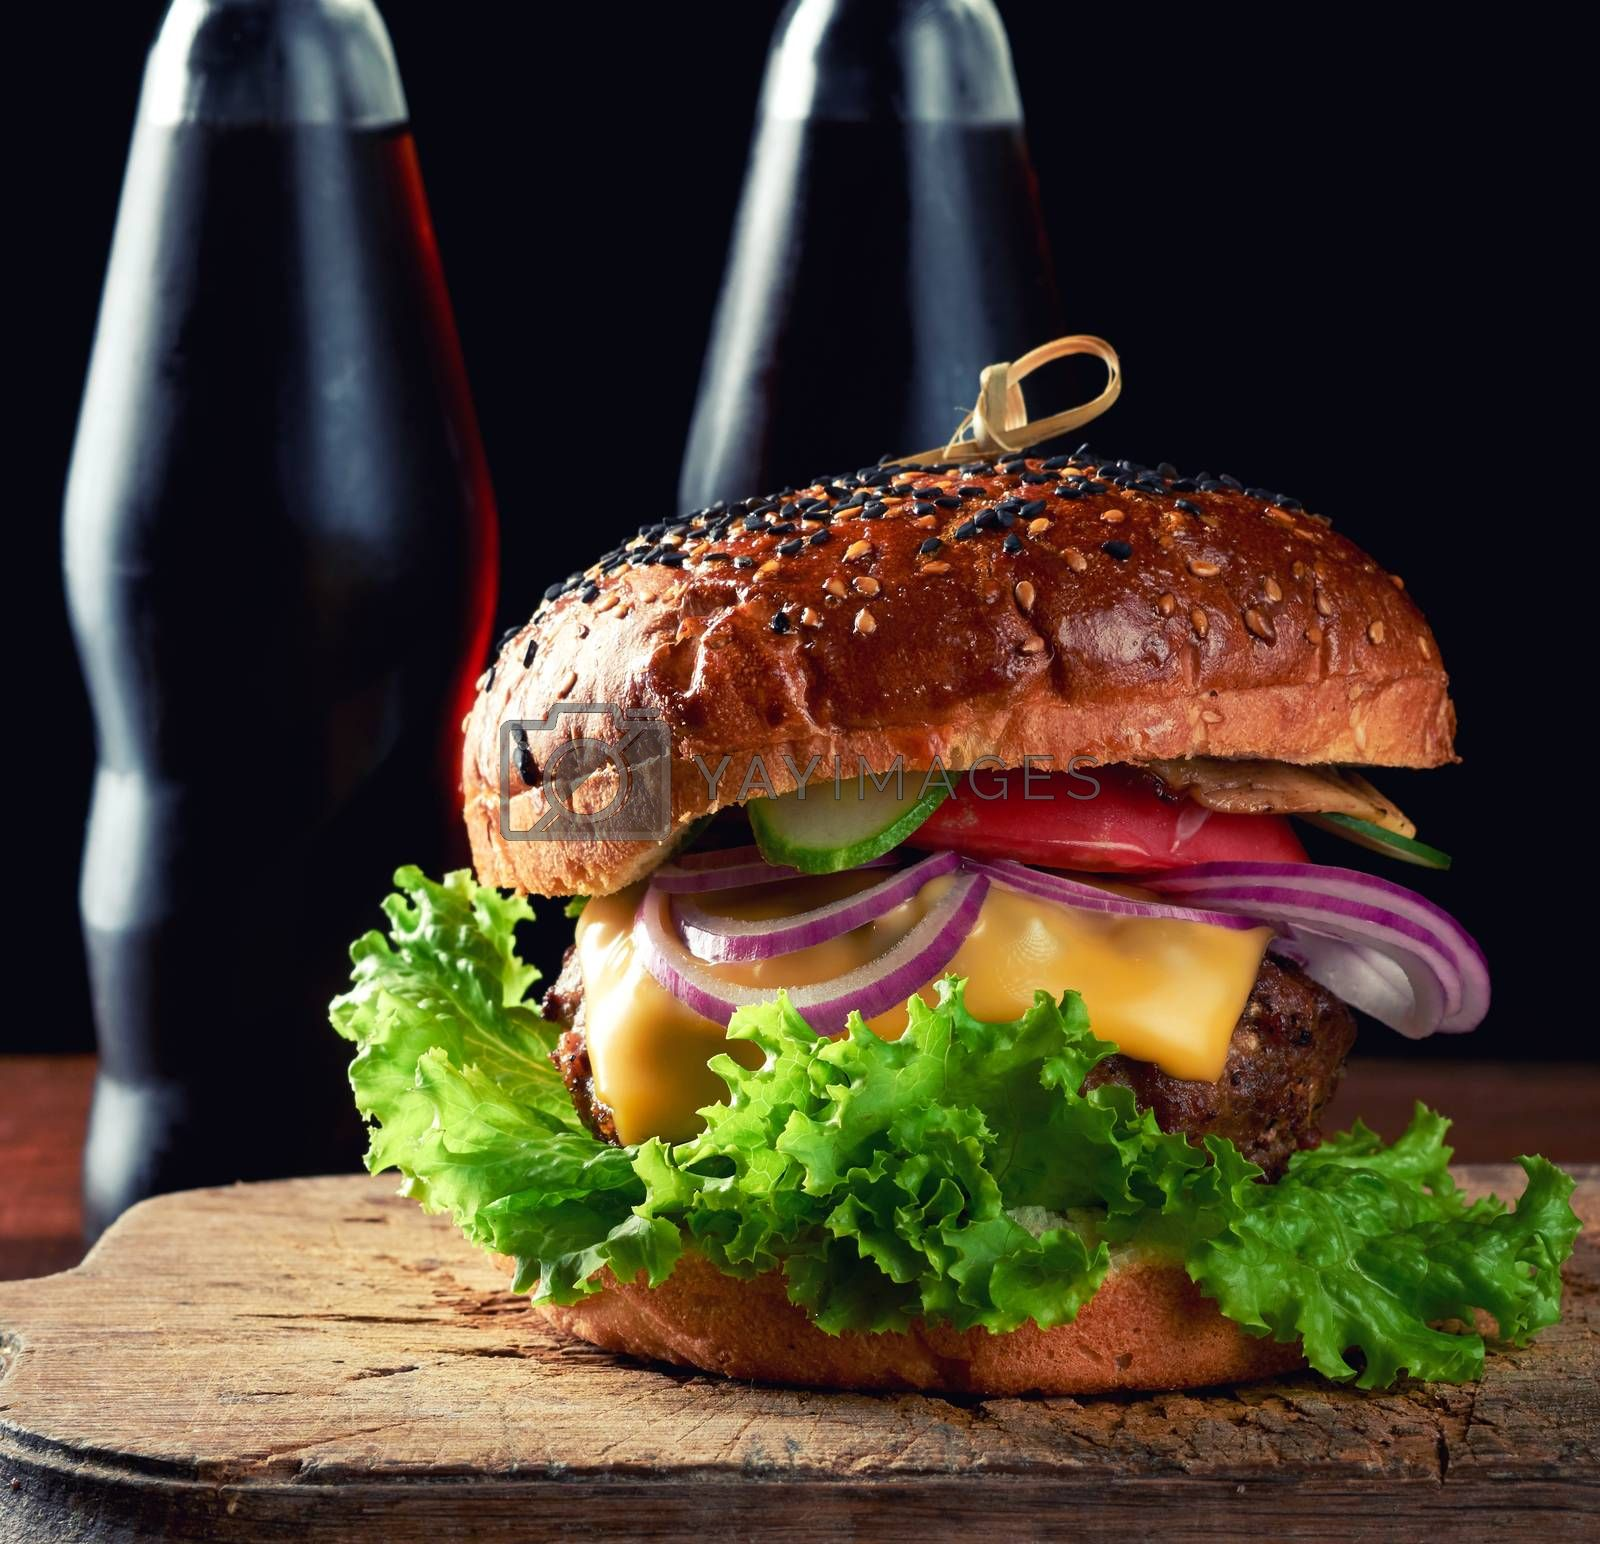 delicious burger with fried beef cutlet, tomato, lettuce and onions, crispy white wheat flour bun with sesame seeds. Fast food on a wooden board, behind a bottle with a drink